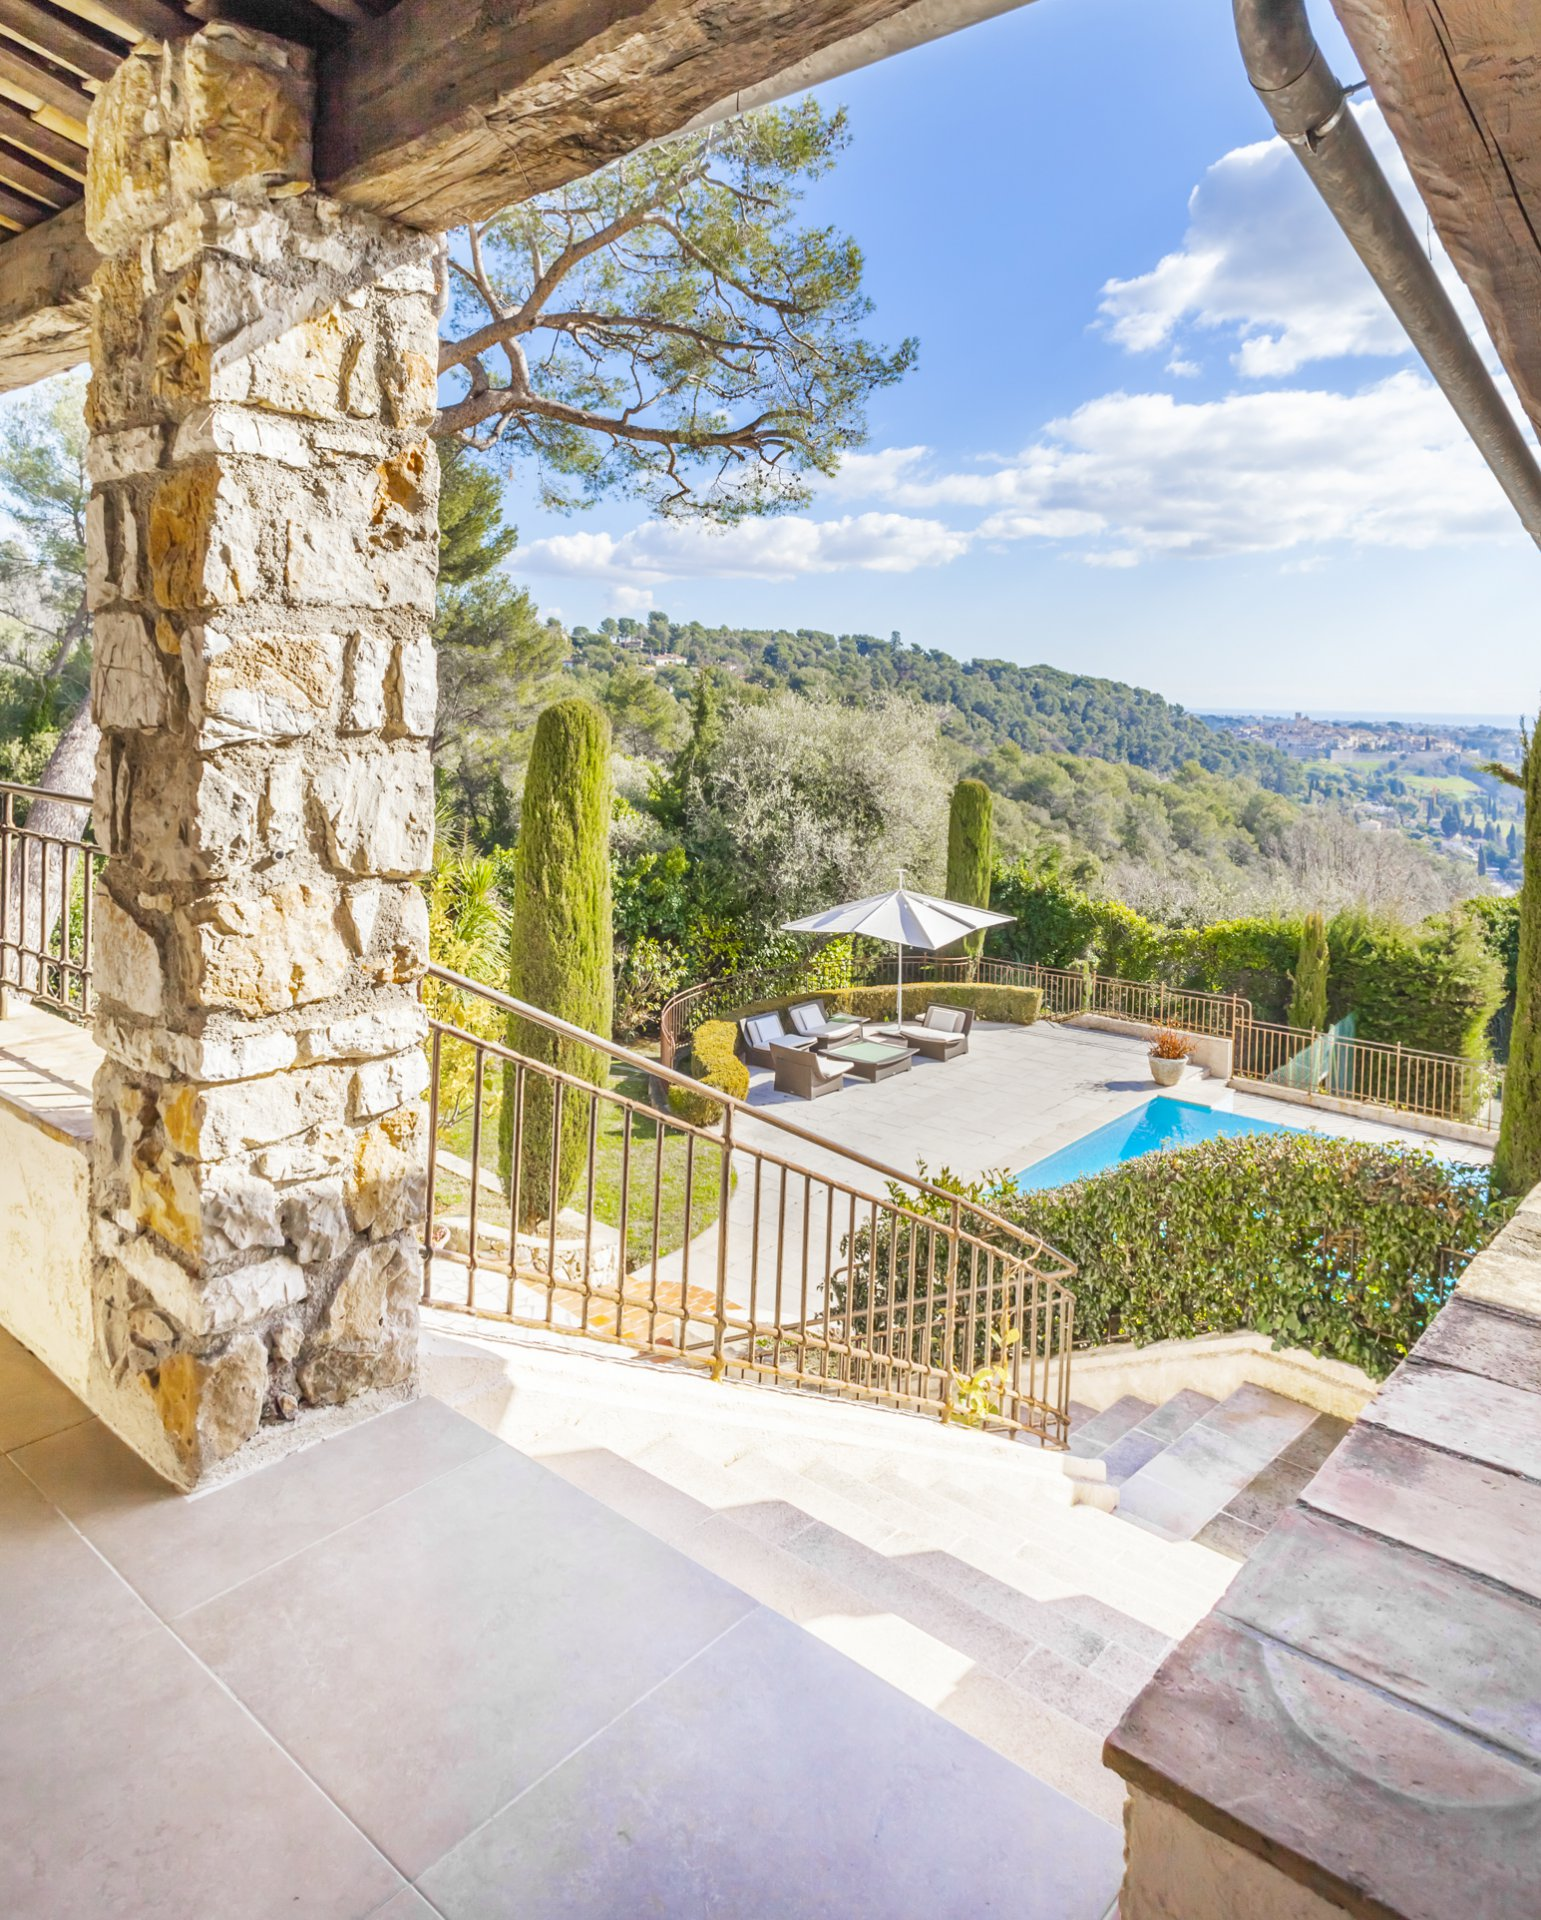 MAGNIFICENT MODERN AND PROVENCAL STYLE PROPERTY